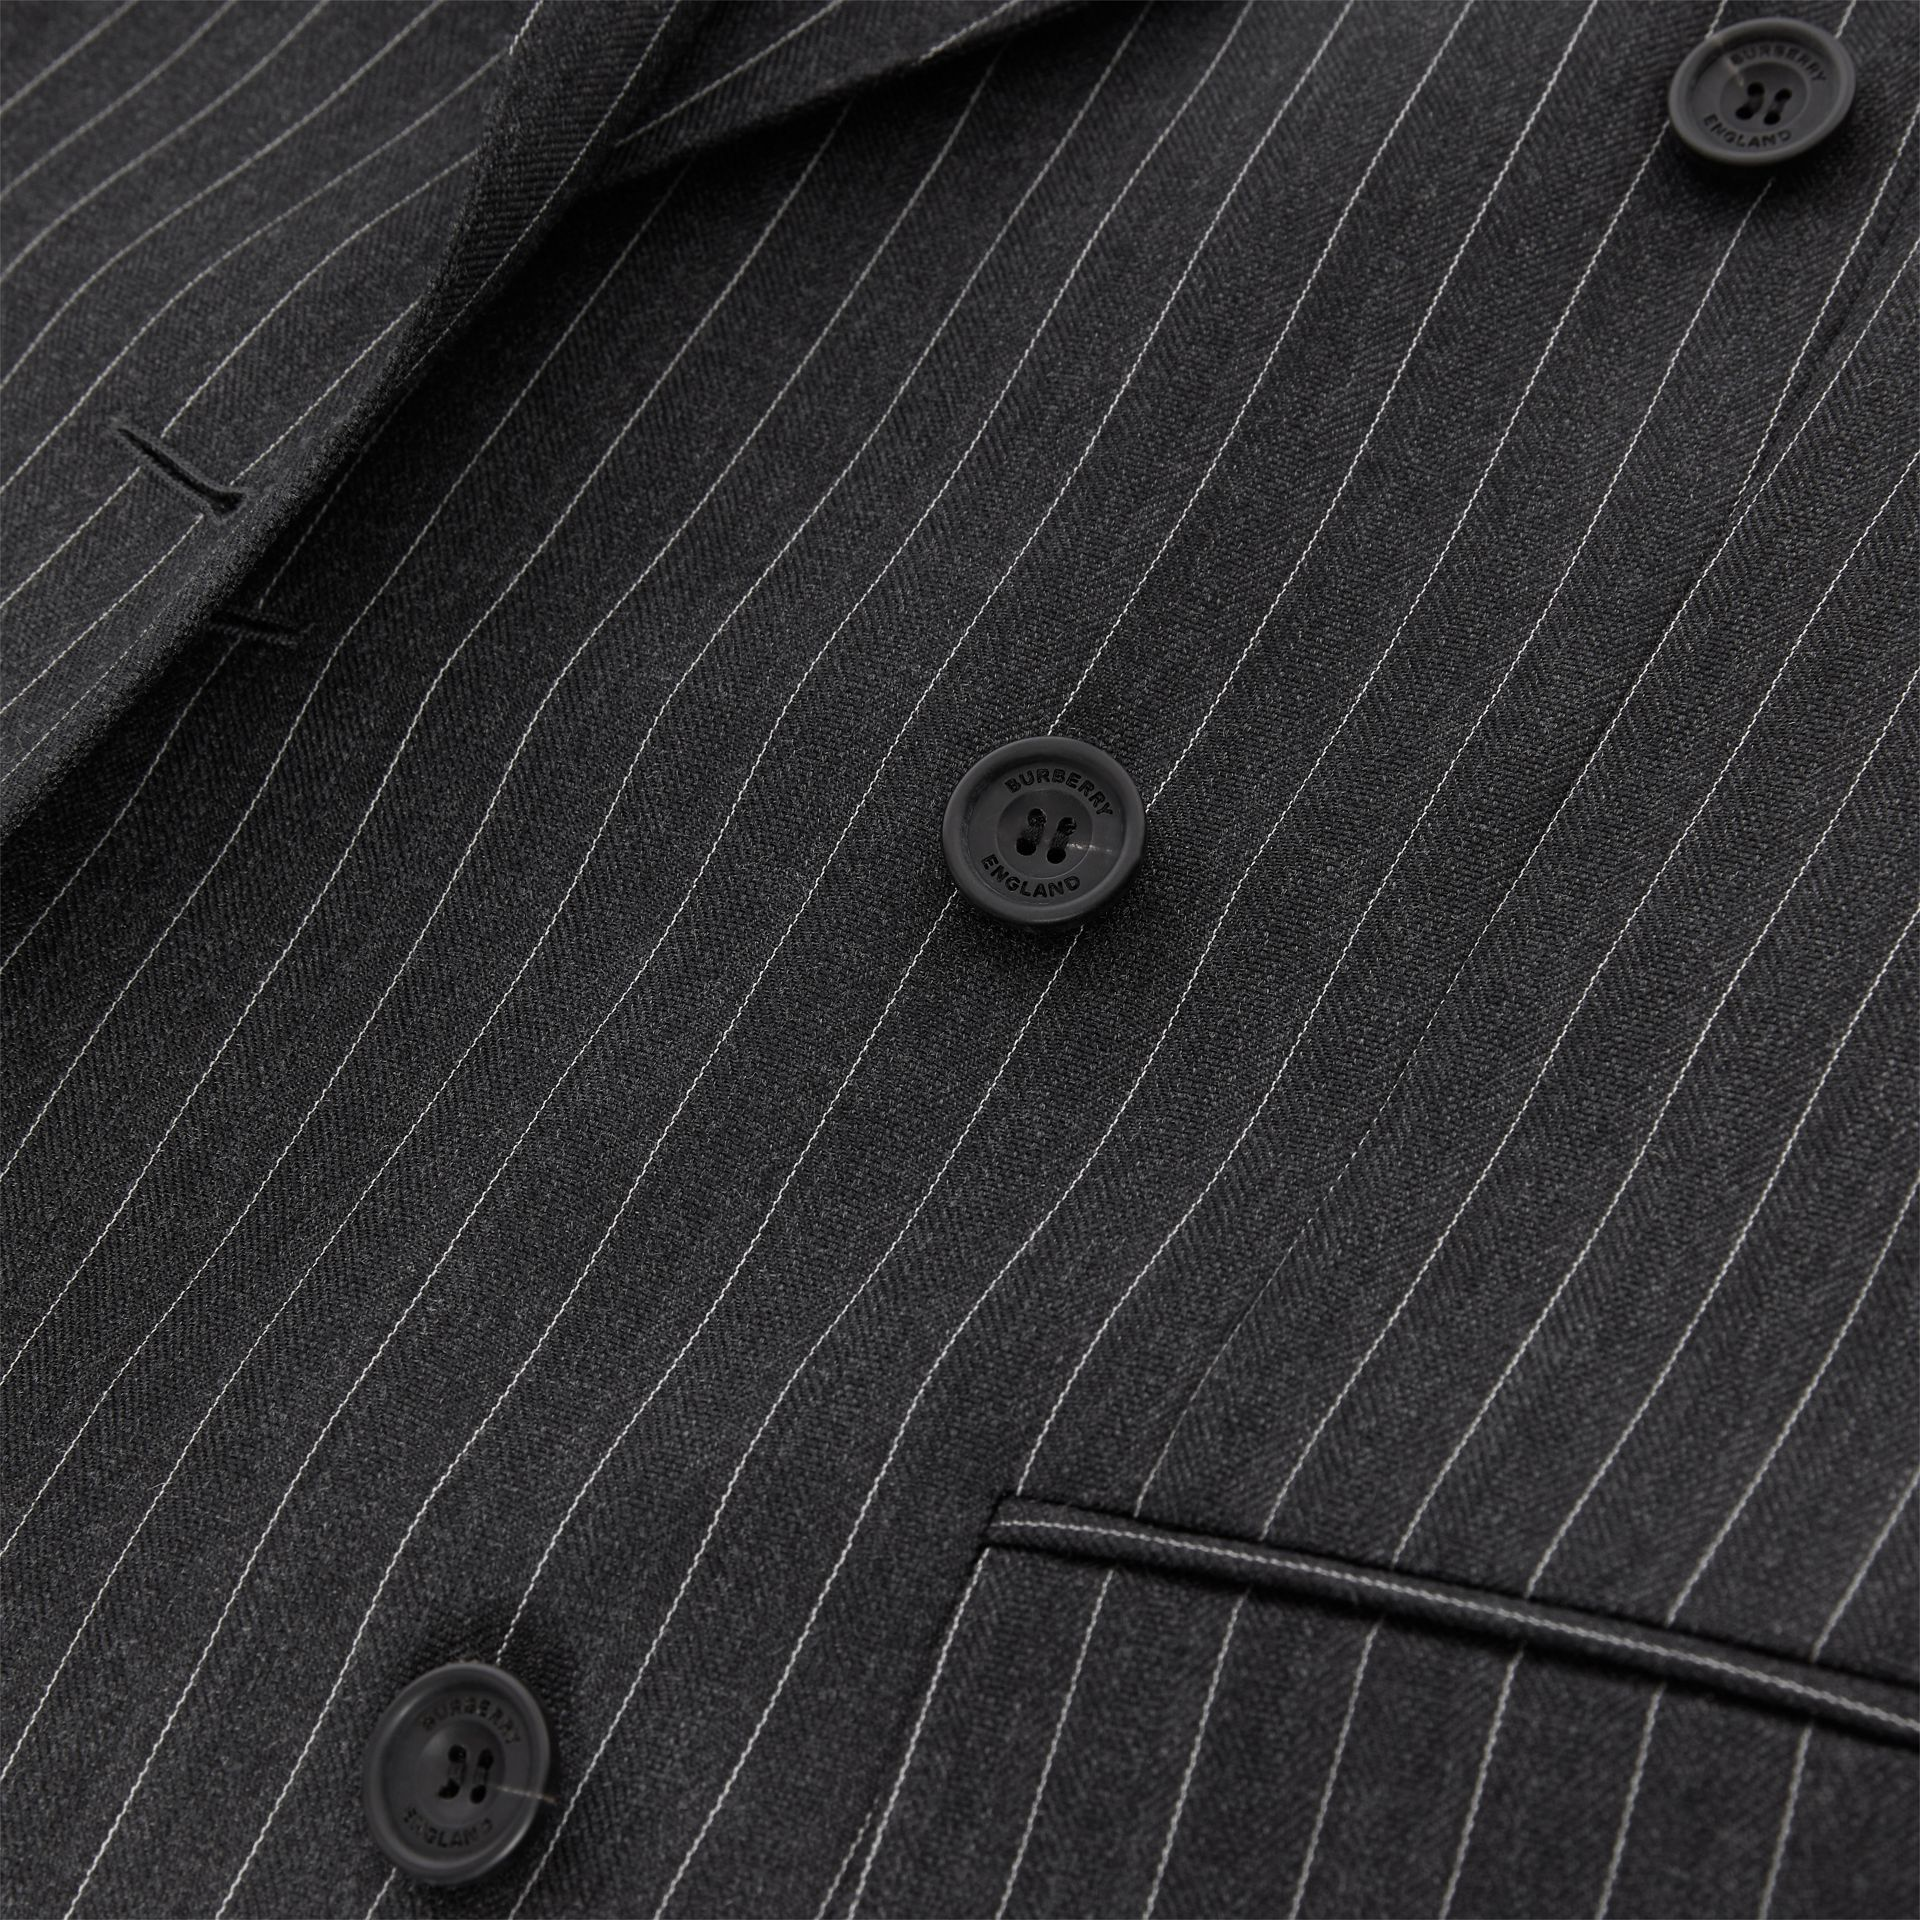 English Fit Pinstriped Wool Double-breasted Suit in Charcoal - Men | Burberry - gallery image 8